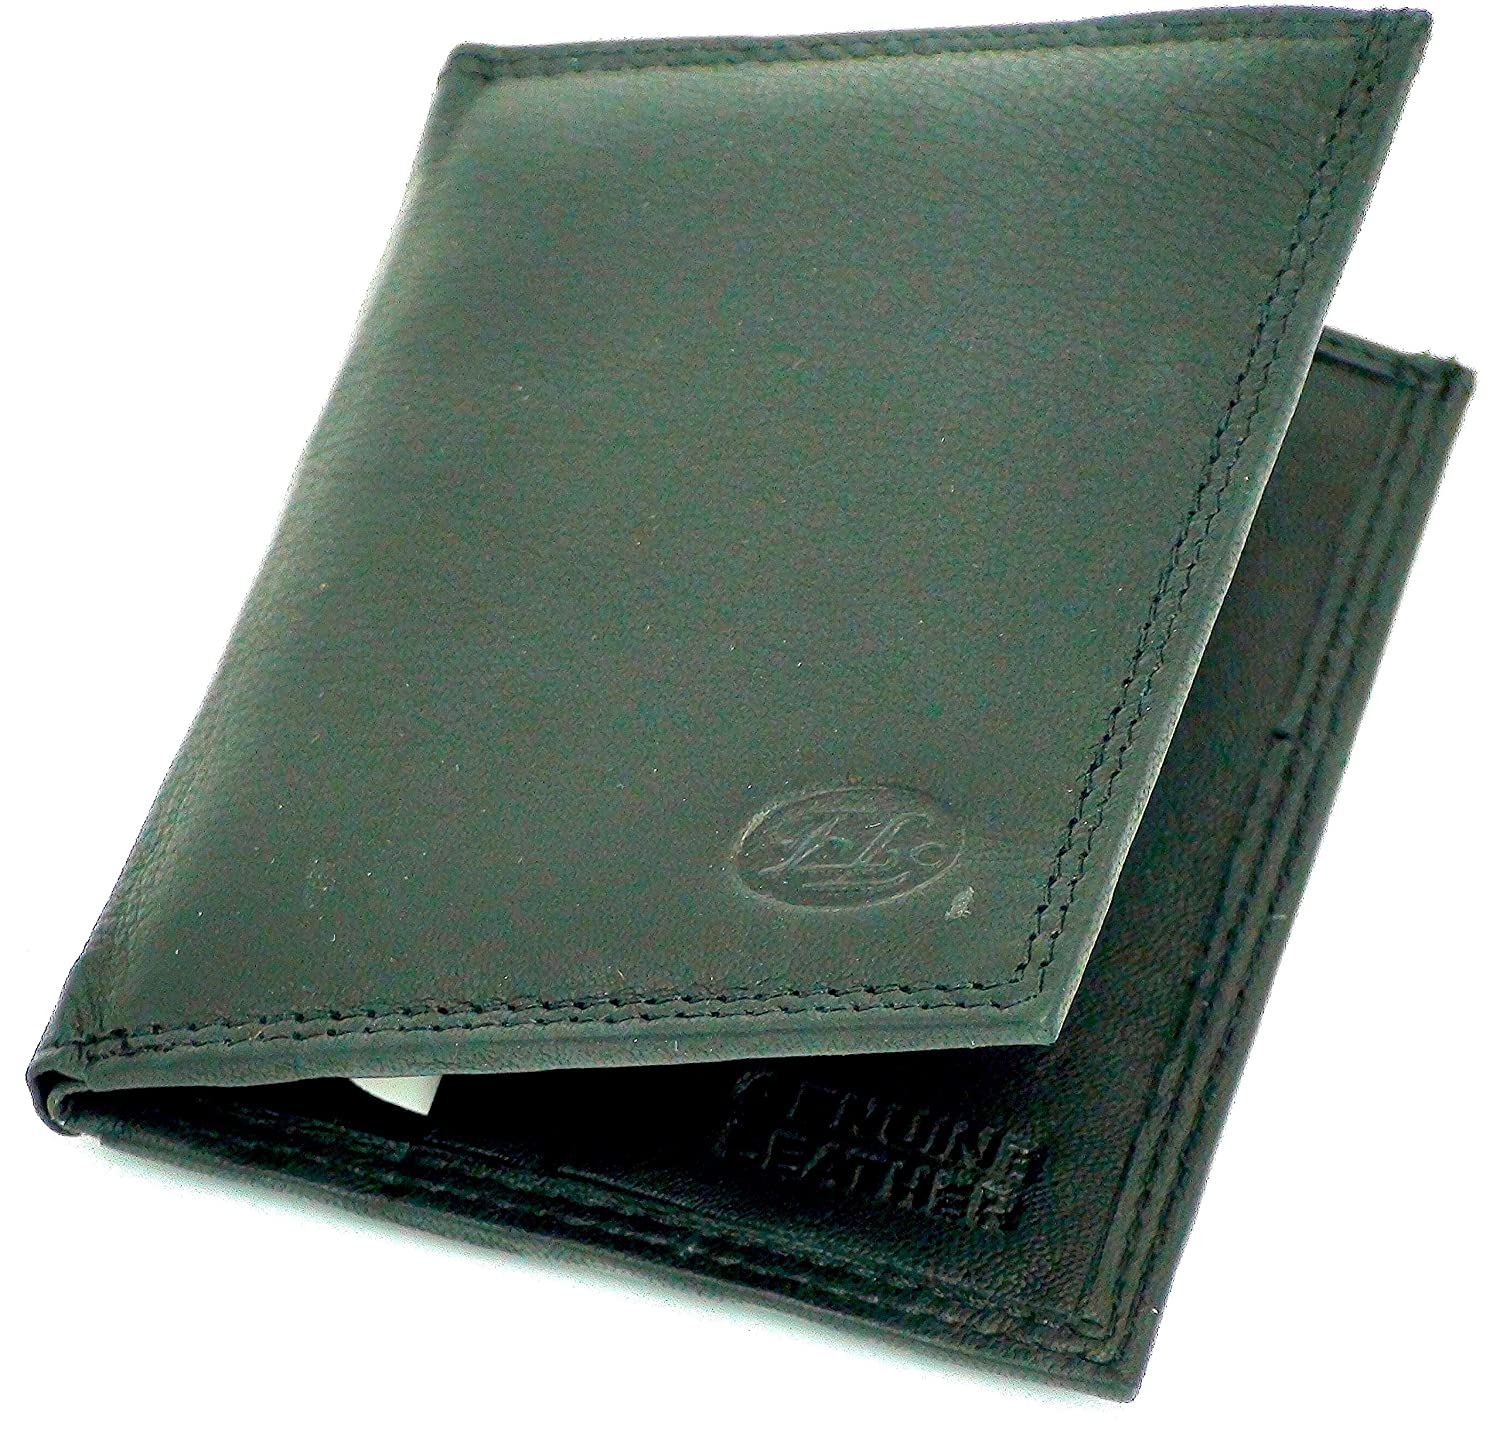 Euro Leather Quality Small Soft Leather Wallet Credit Cards - Size: 104(h) x 78(w) x 10(d) mm Florentina